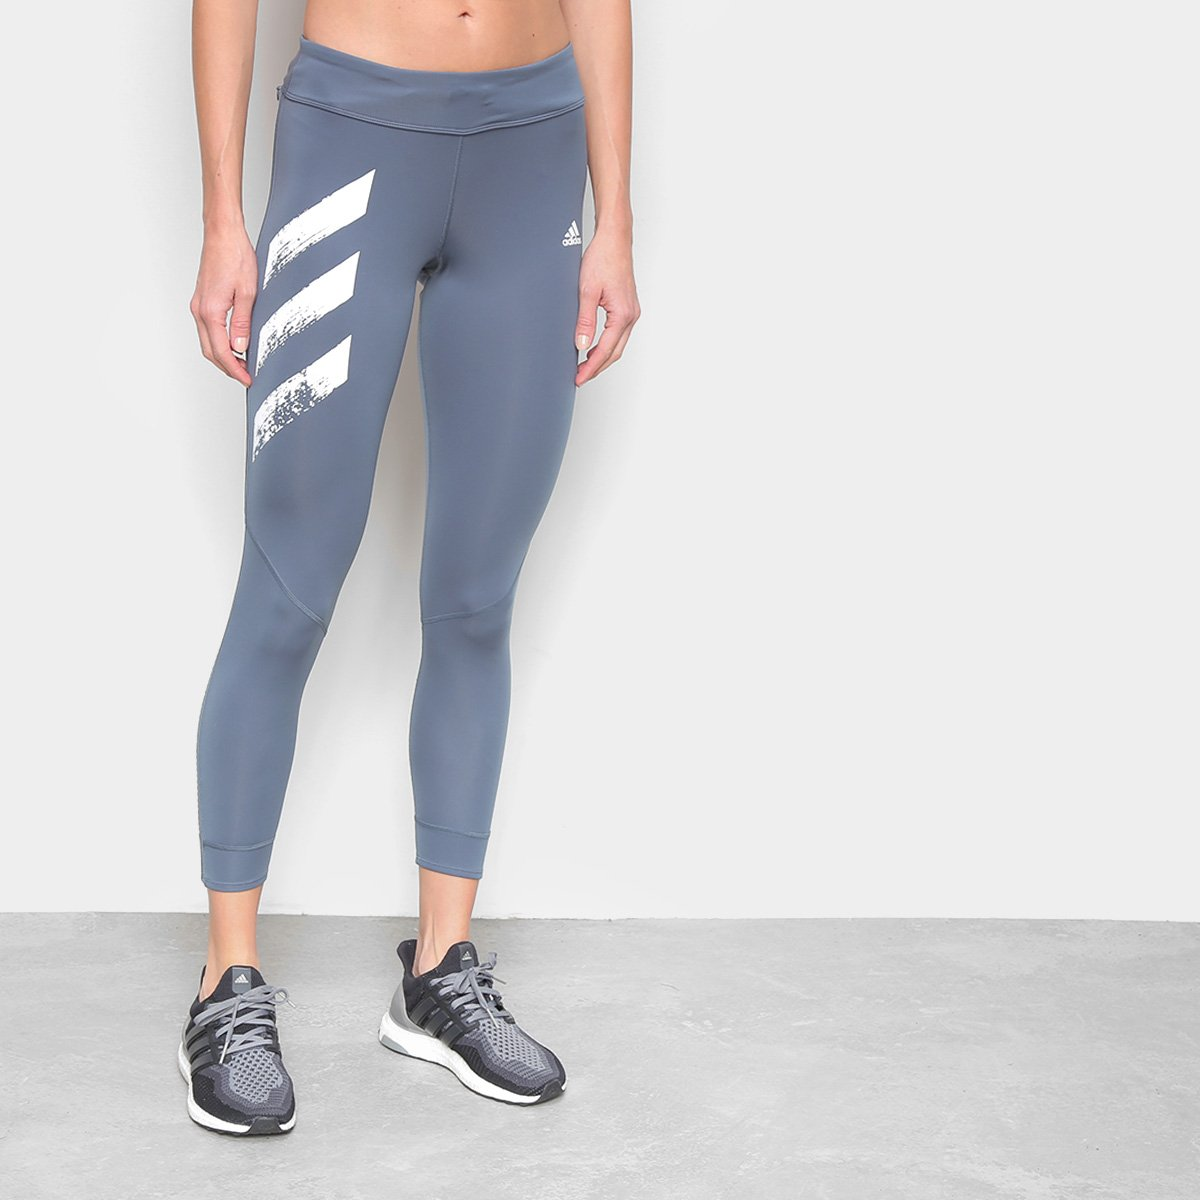 Calça Legging Adidas Own The Run PB Feminina